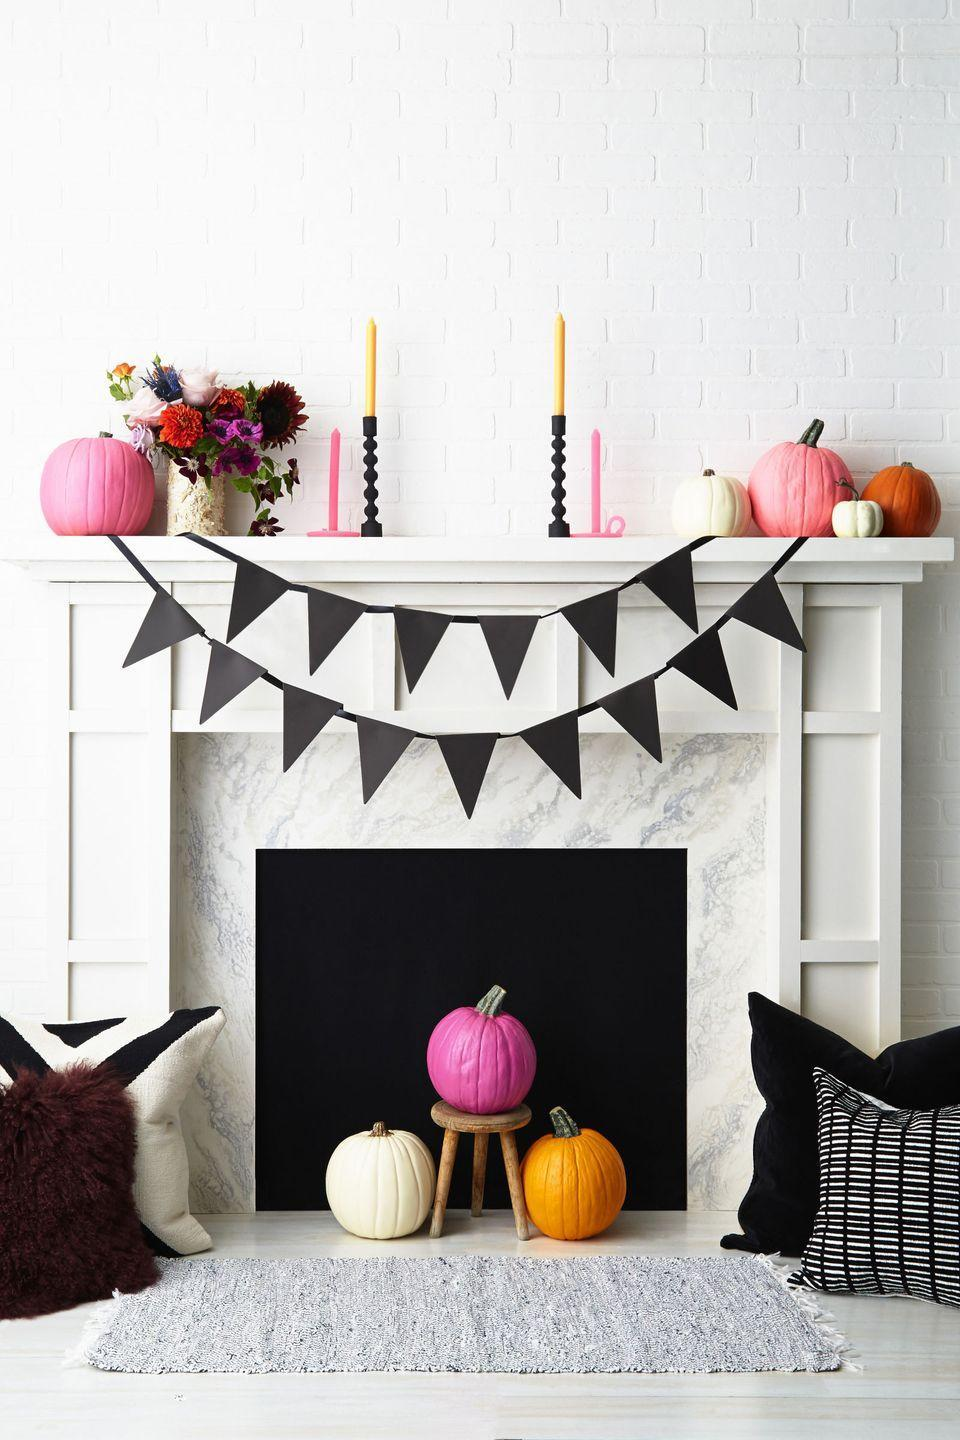 "<p>Skip the traditional orange decor in lieu of another hue (<span class=""redactor-unlink"">pink</span>, for example) and the result can be a lot more cheerful and unique. Round out the fireplace with a DIY pennant spelling out ""Happy Halloween""—or another message from beyond the grave. Get the tutorial at <a href=""http://www.goodhousekeeping.com/holidays/halloween-ideas/g421/halloween-decorating-ideas-1007/"" rel=""nofollow noopener"" target=""_blank"" data-ylk=""slk:Good Housekeeping"" class=""link rapid-noclick-resp"">Good Housekeeping</a>. </p><p><a class=""link rapid-noclick-resp"" href=""https://www.amazon.com/Apple-Barrel-Acrylic-Assorted-21049E/dp/B01FJ2HFYC/ref=sr_1_4?tag=syn-yahoo-20&ascsubtag=%5Bartid%7C10057.g.2554%5Bsrc%7Cyahoo-us"" rel=""nofollow noopener"" target=""_blank"" data-ylk=""slk:BUY NOW"">BUY NOW</a> <strong><em>Pink Acrylic Paint, $6</em></strong></p>"